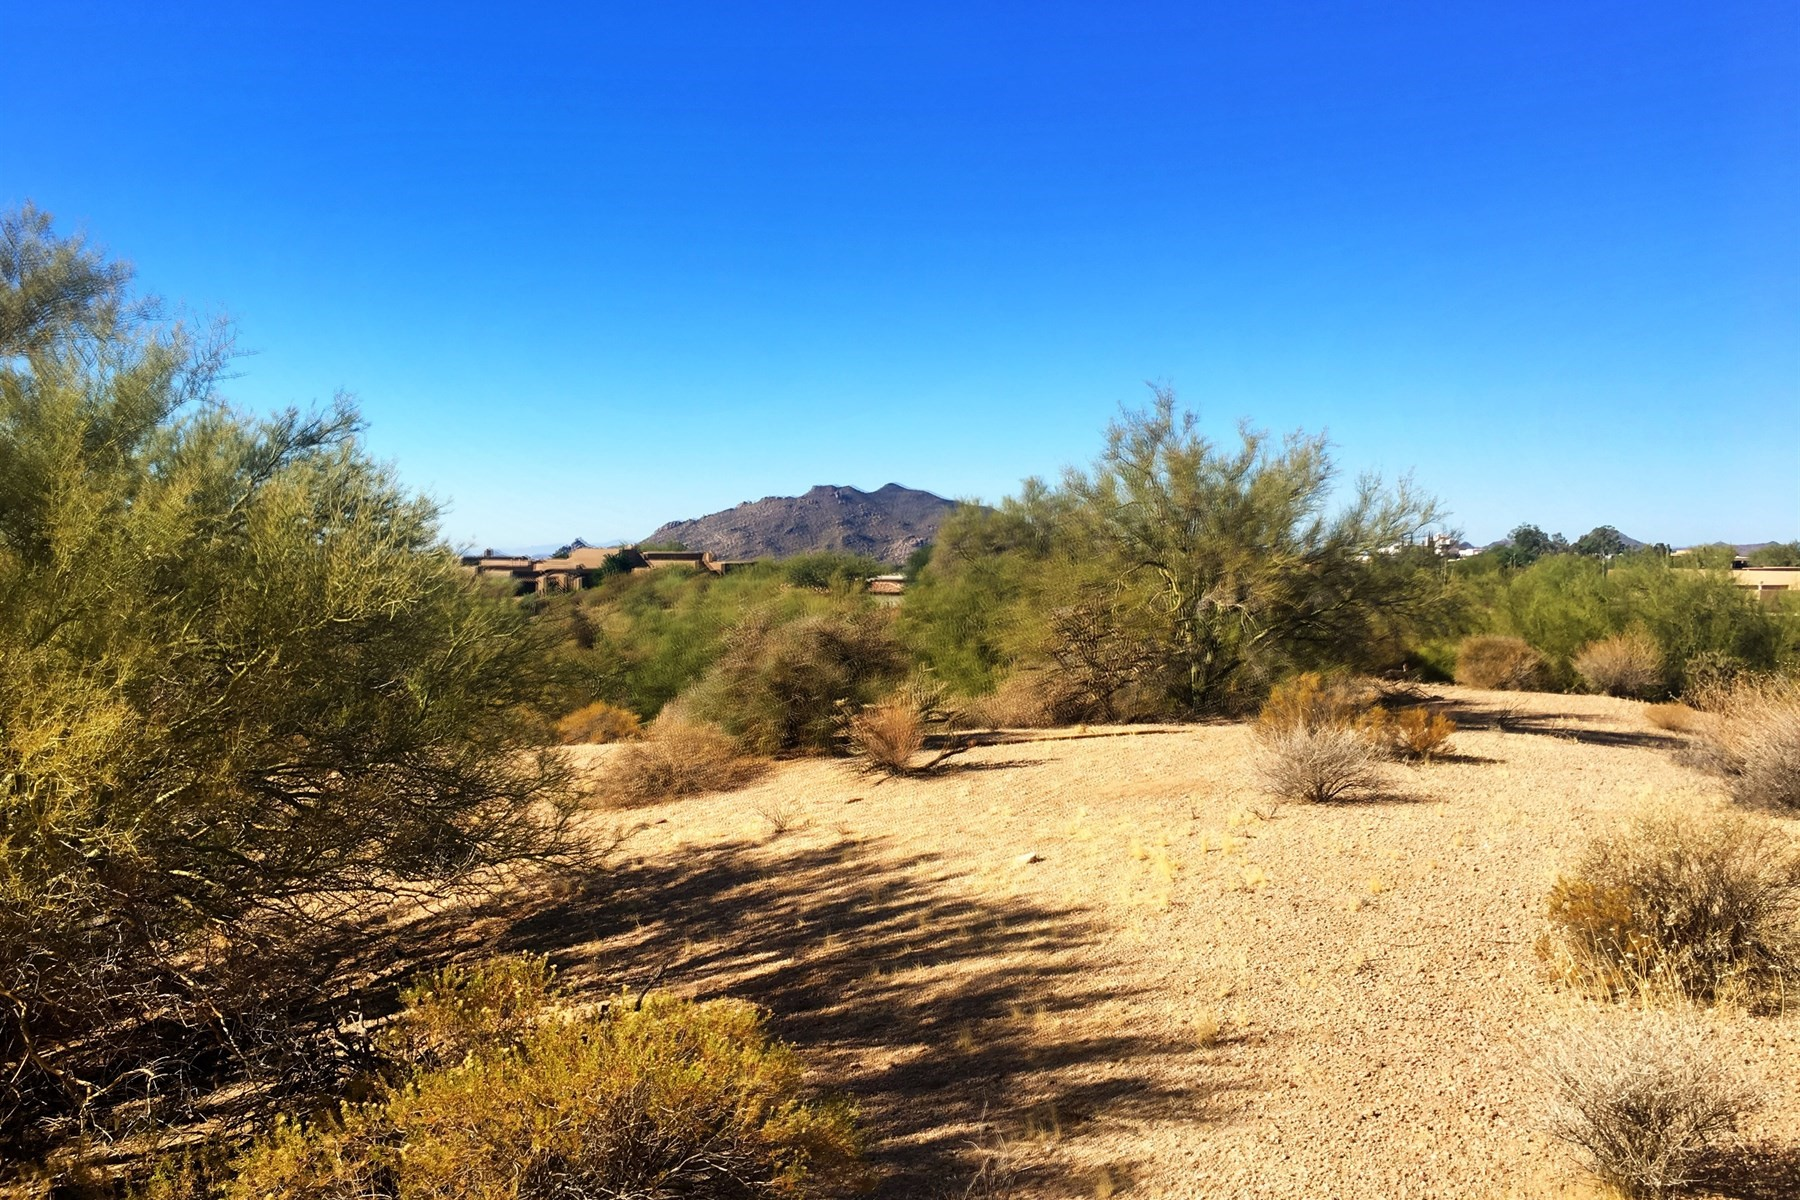 Land for Sale at Elevated Homesite 9217 E Sky Line DR 100, Scottsdale, Arizona, 85262 United States